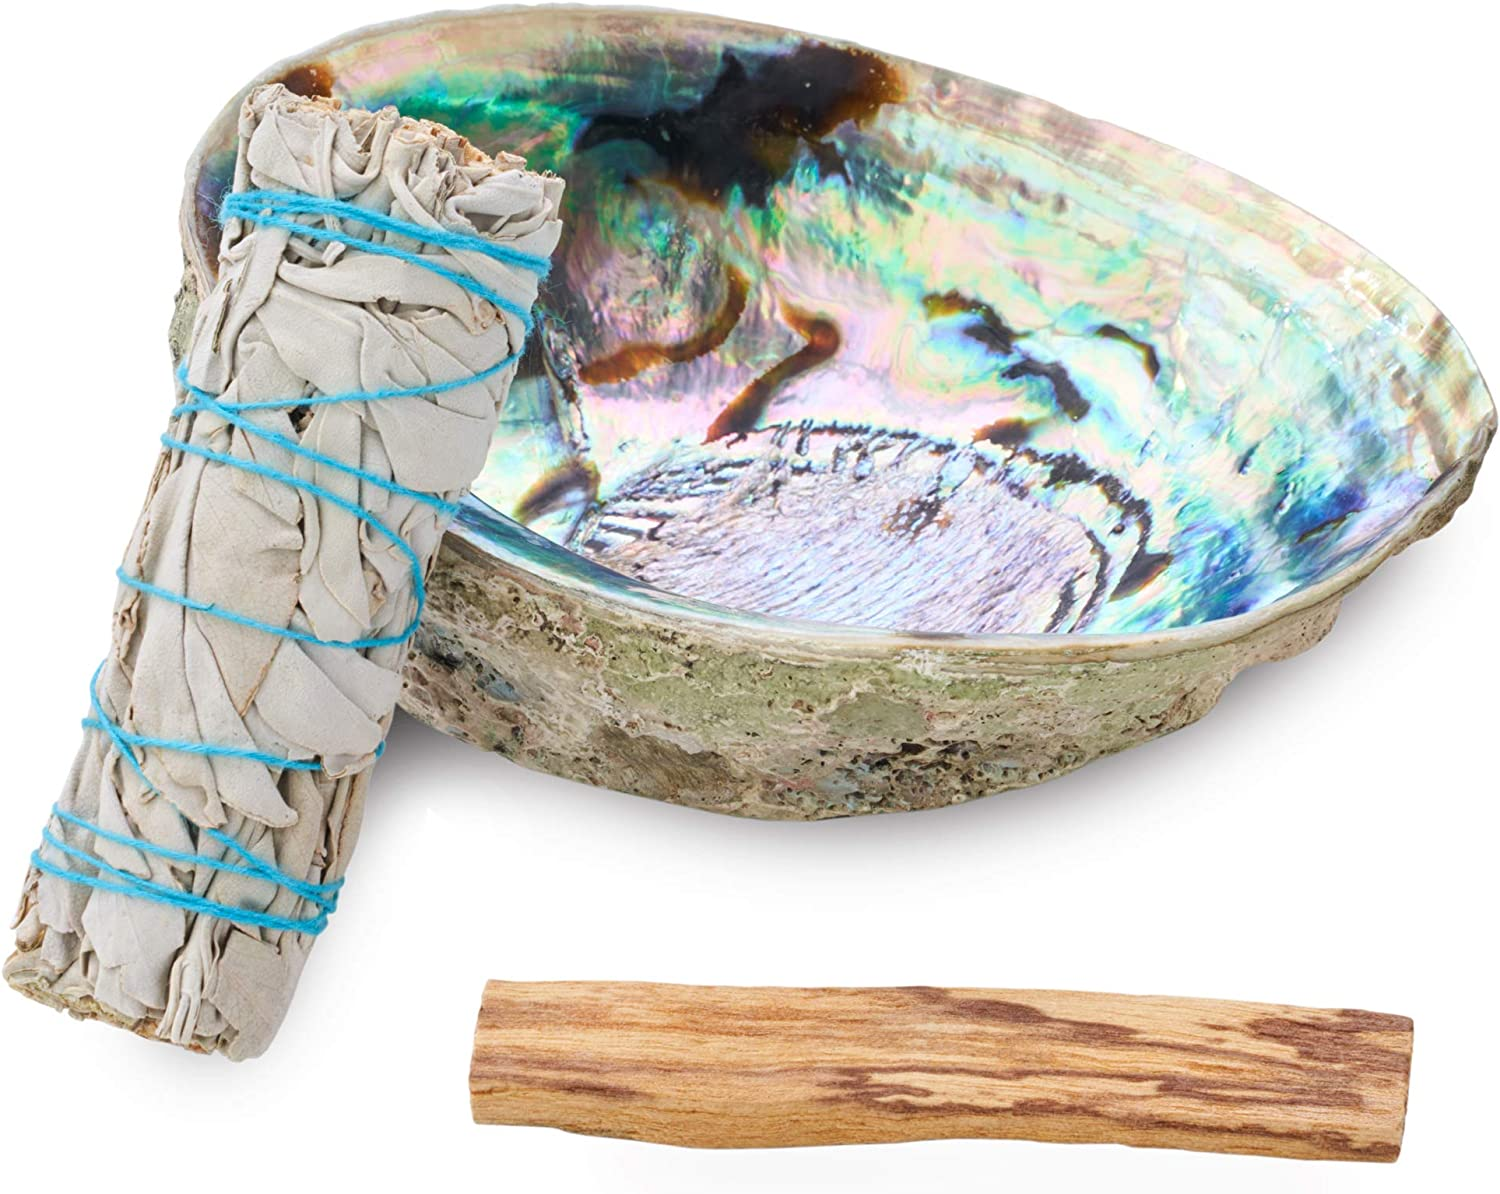 JL Local Origins Smudging Kit - White Sage Smudge Stick + Palo Santo + Abalone Shell Bowl   Sustainably Sourced Healing Incense for Home Cleansing, Protection, Meditation, Positive Energy…